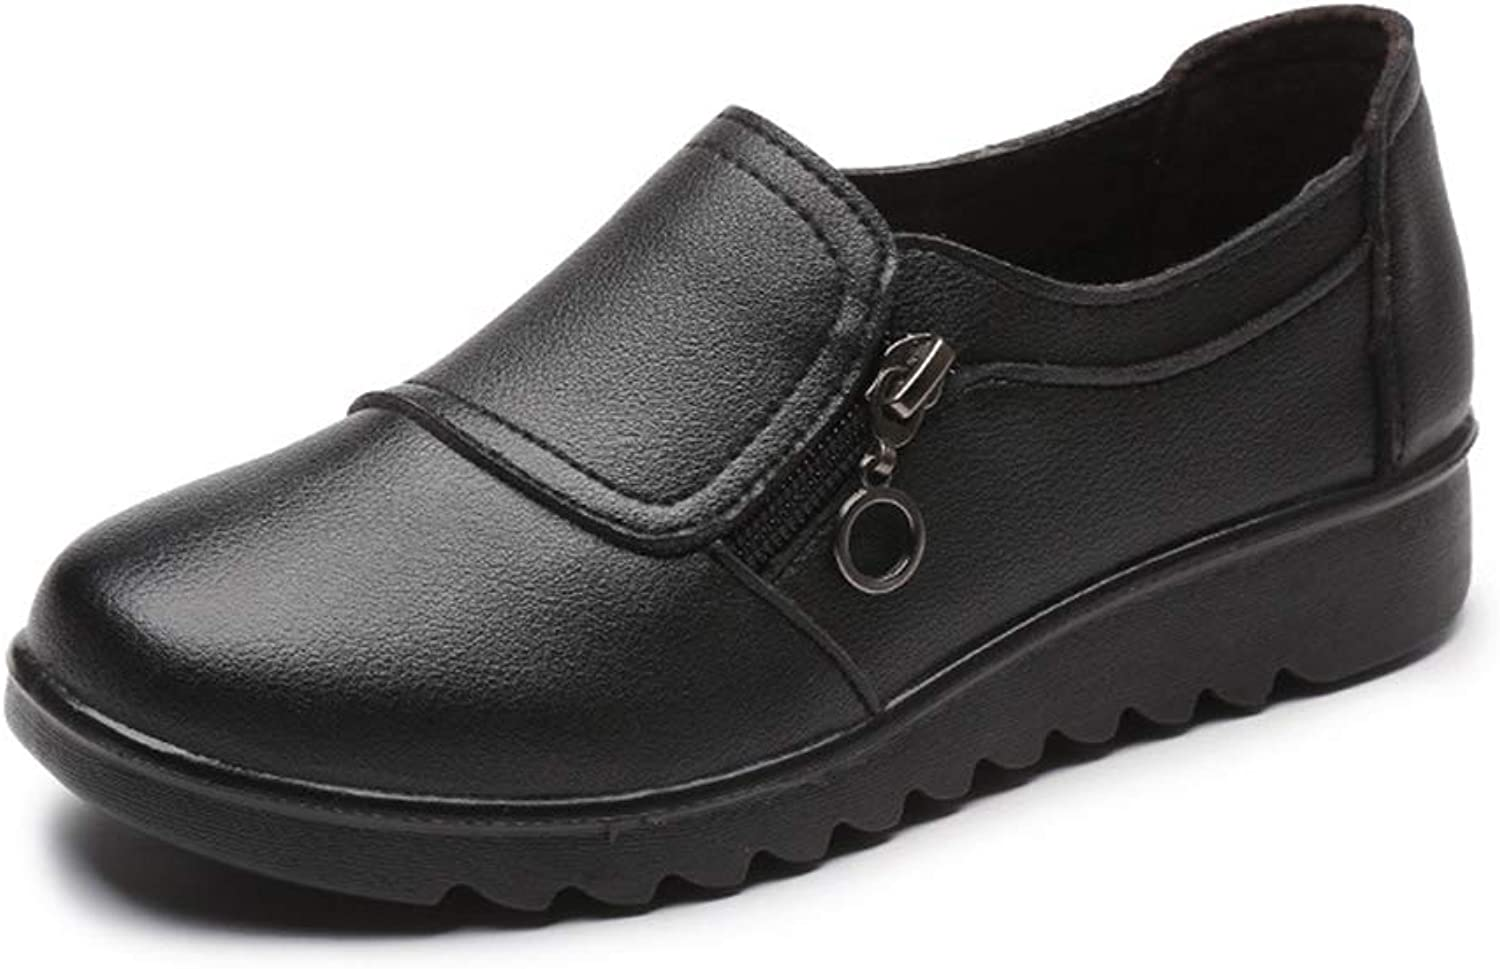 York Zhu Women's Flats shoes,Slip On Flats Comfort Driving Office Loafer shoes Black